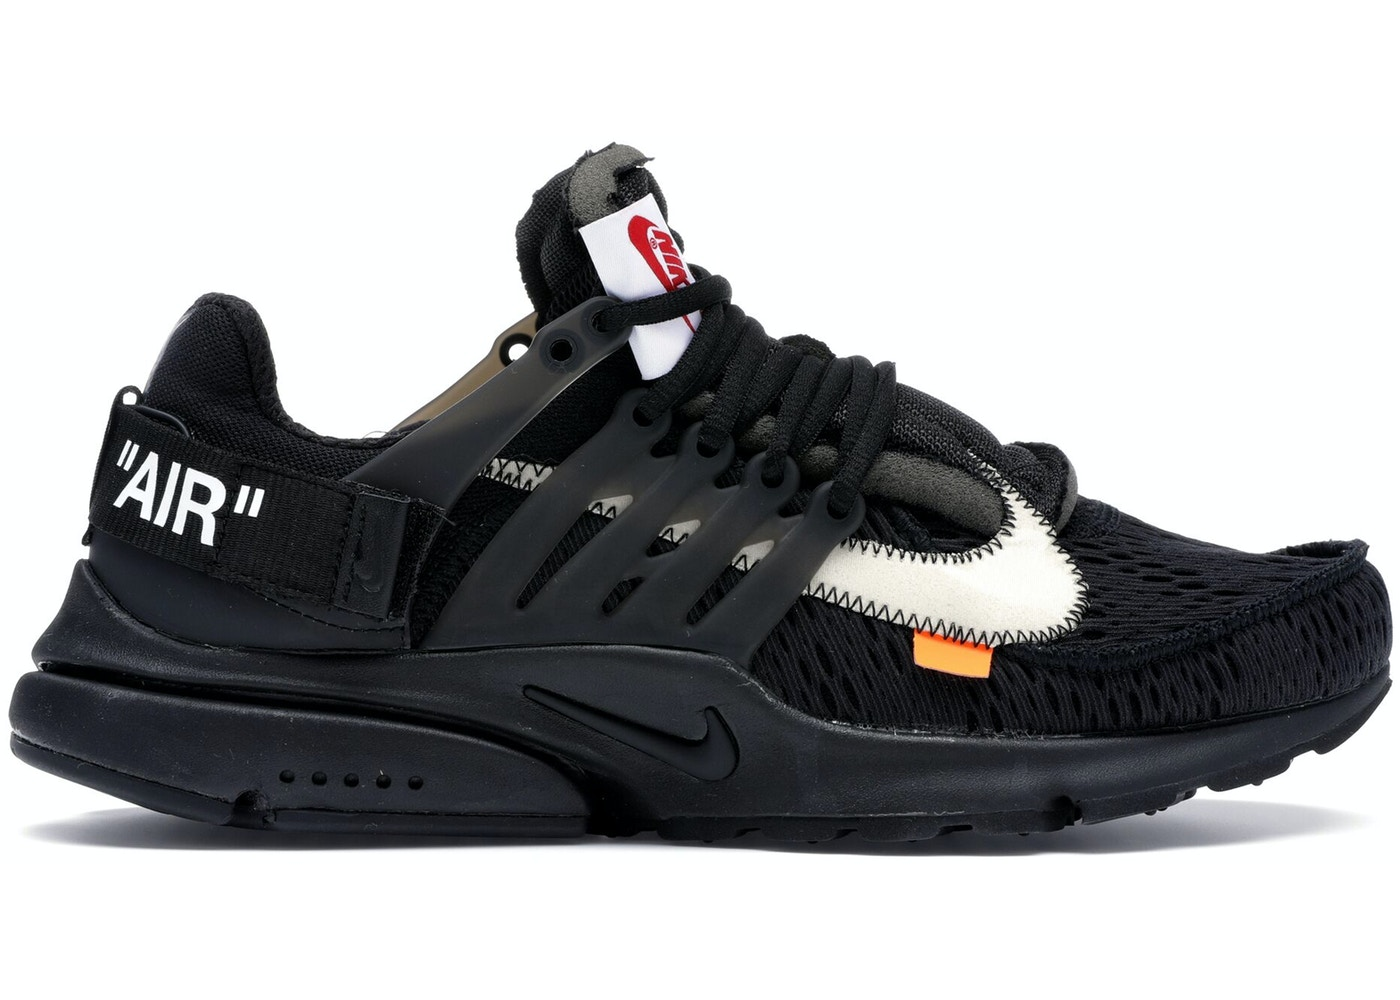 nouveau style 44bbb 0cd63 Air Presto Off-White Black (2018)